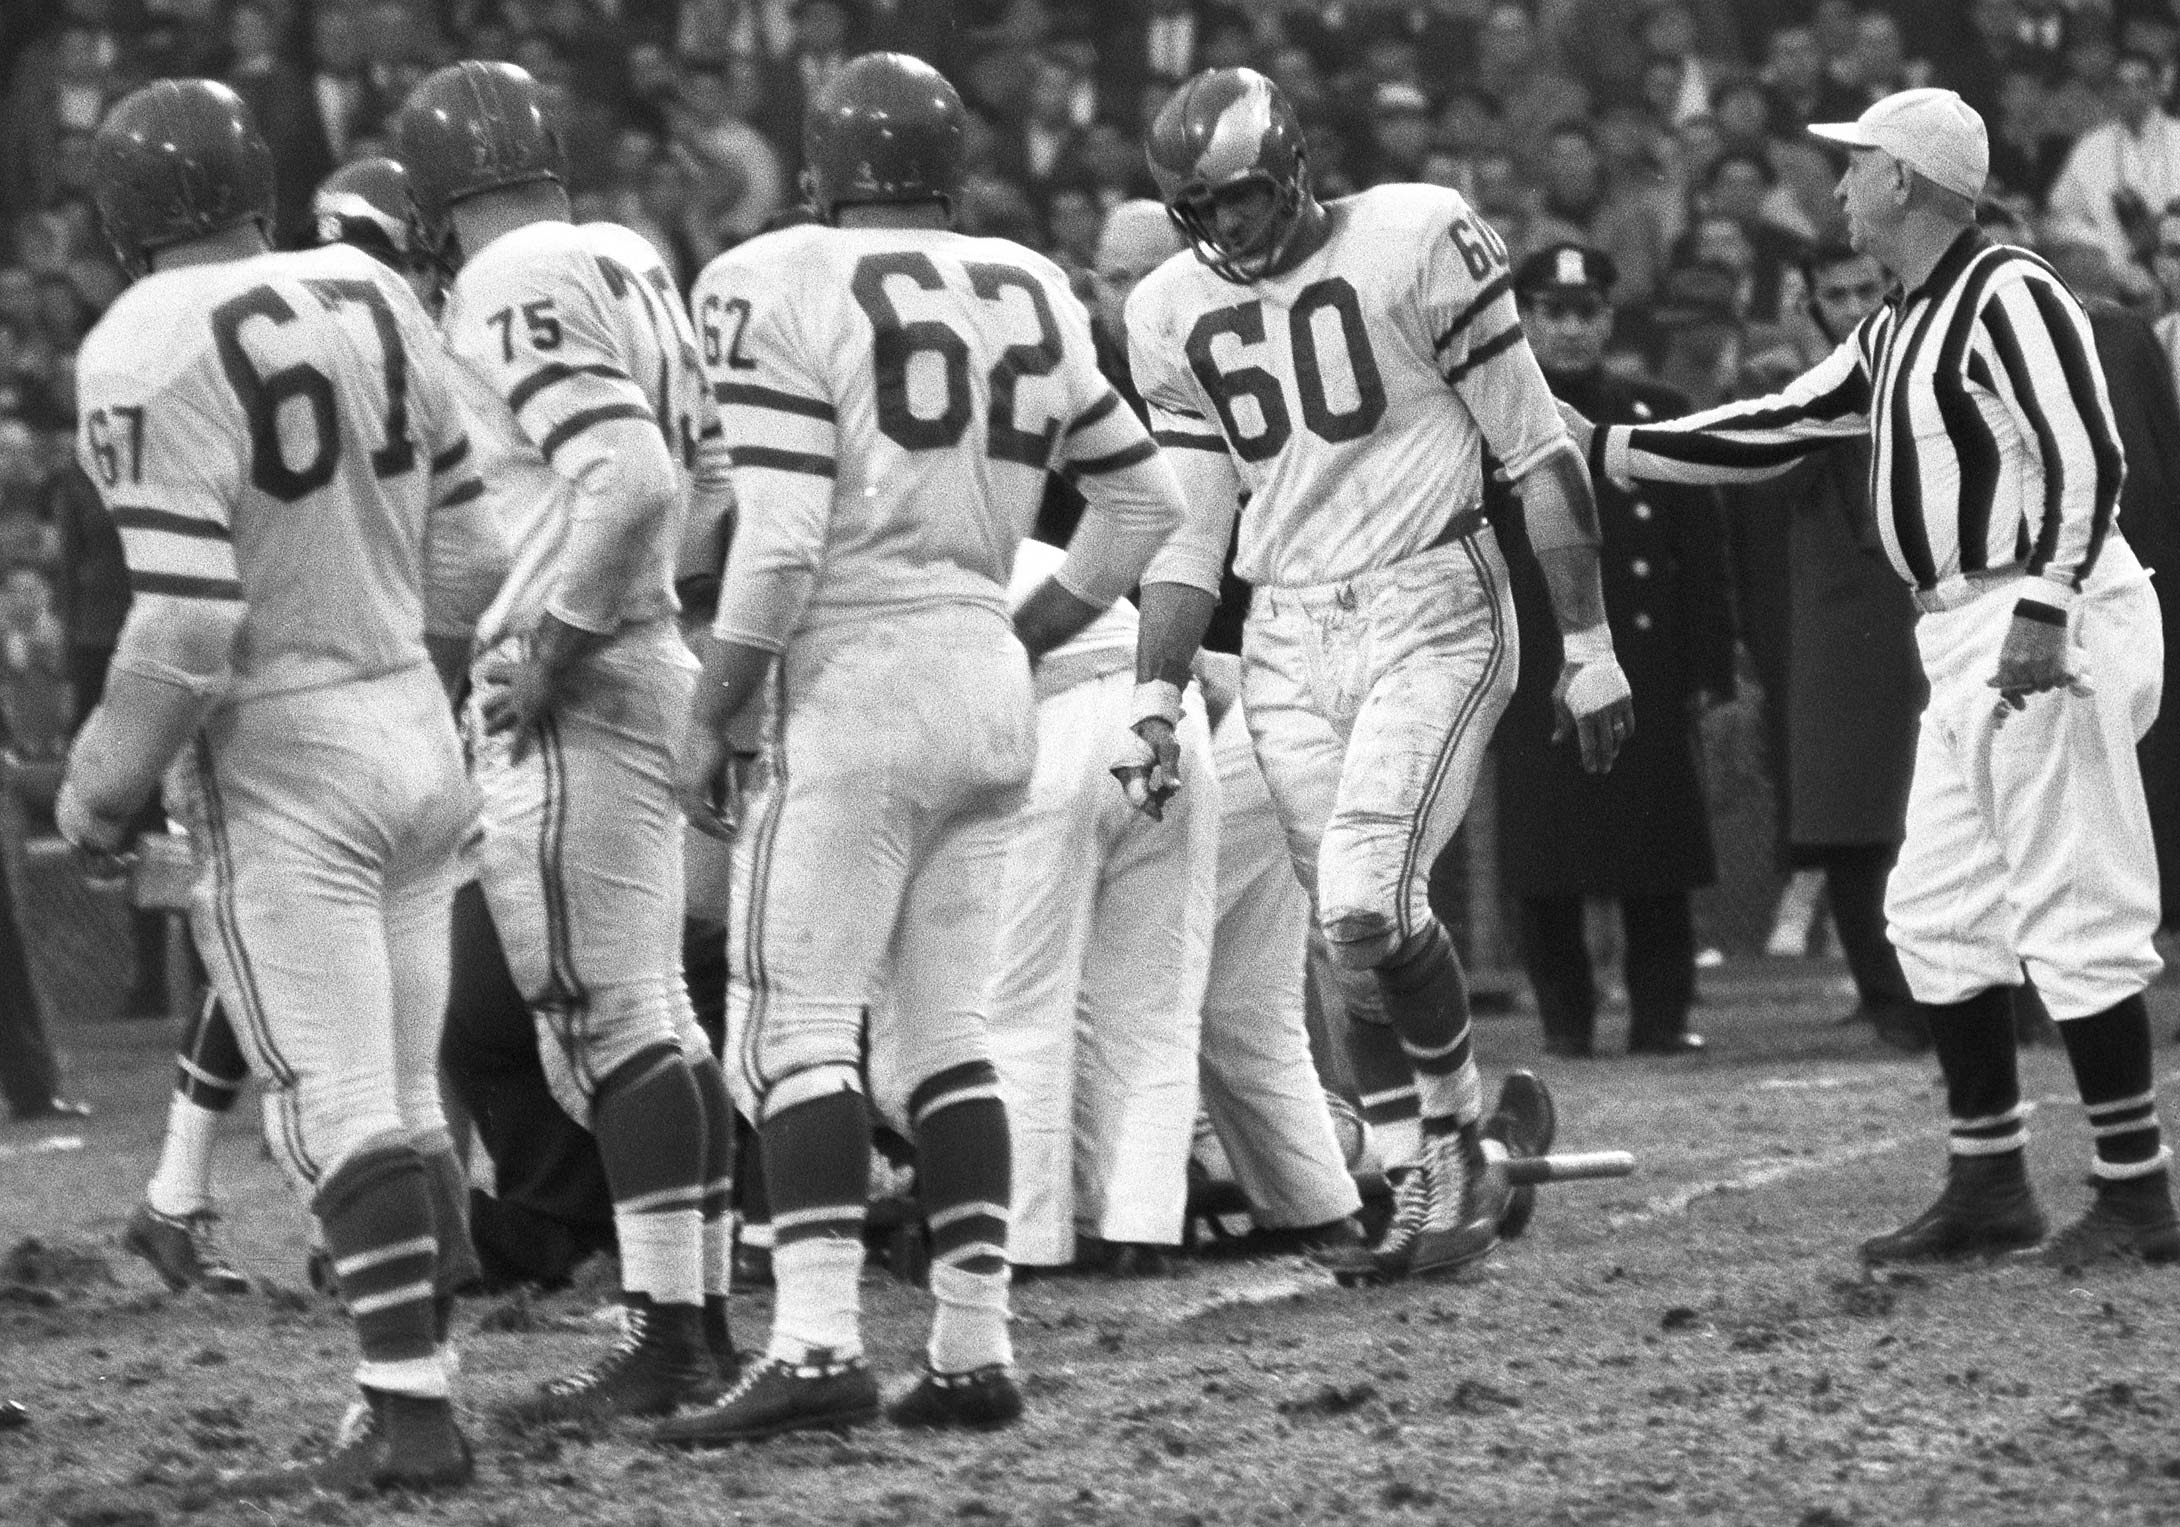 A referee talks with Chuck Bednarik his tackle on Frank Gifford at Yankee Stadium. Gifford (background) was knocked out and, because of this injury, did not play for 18 months.